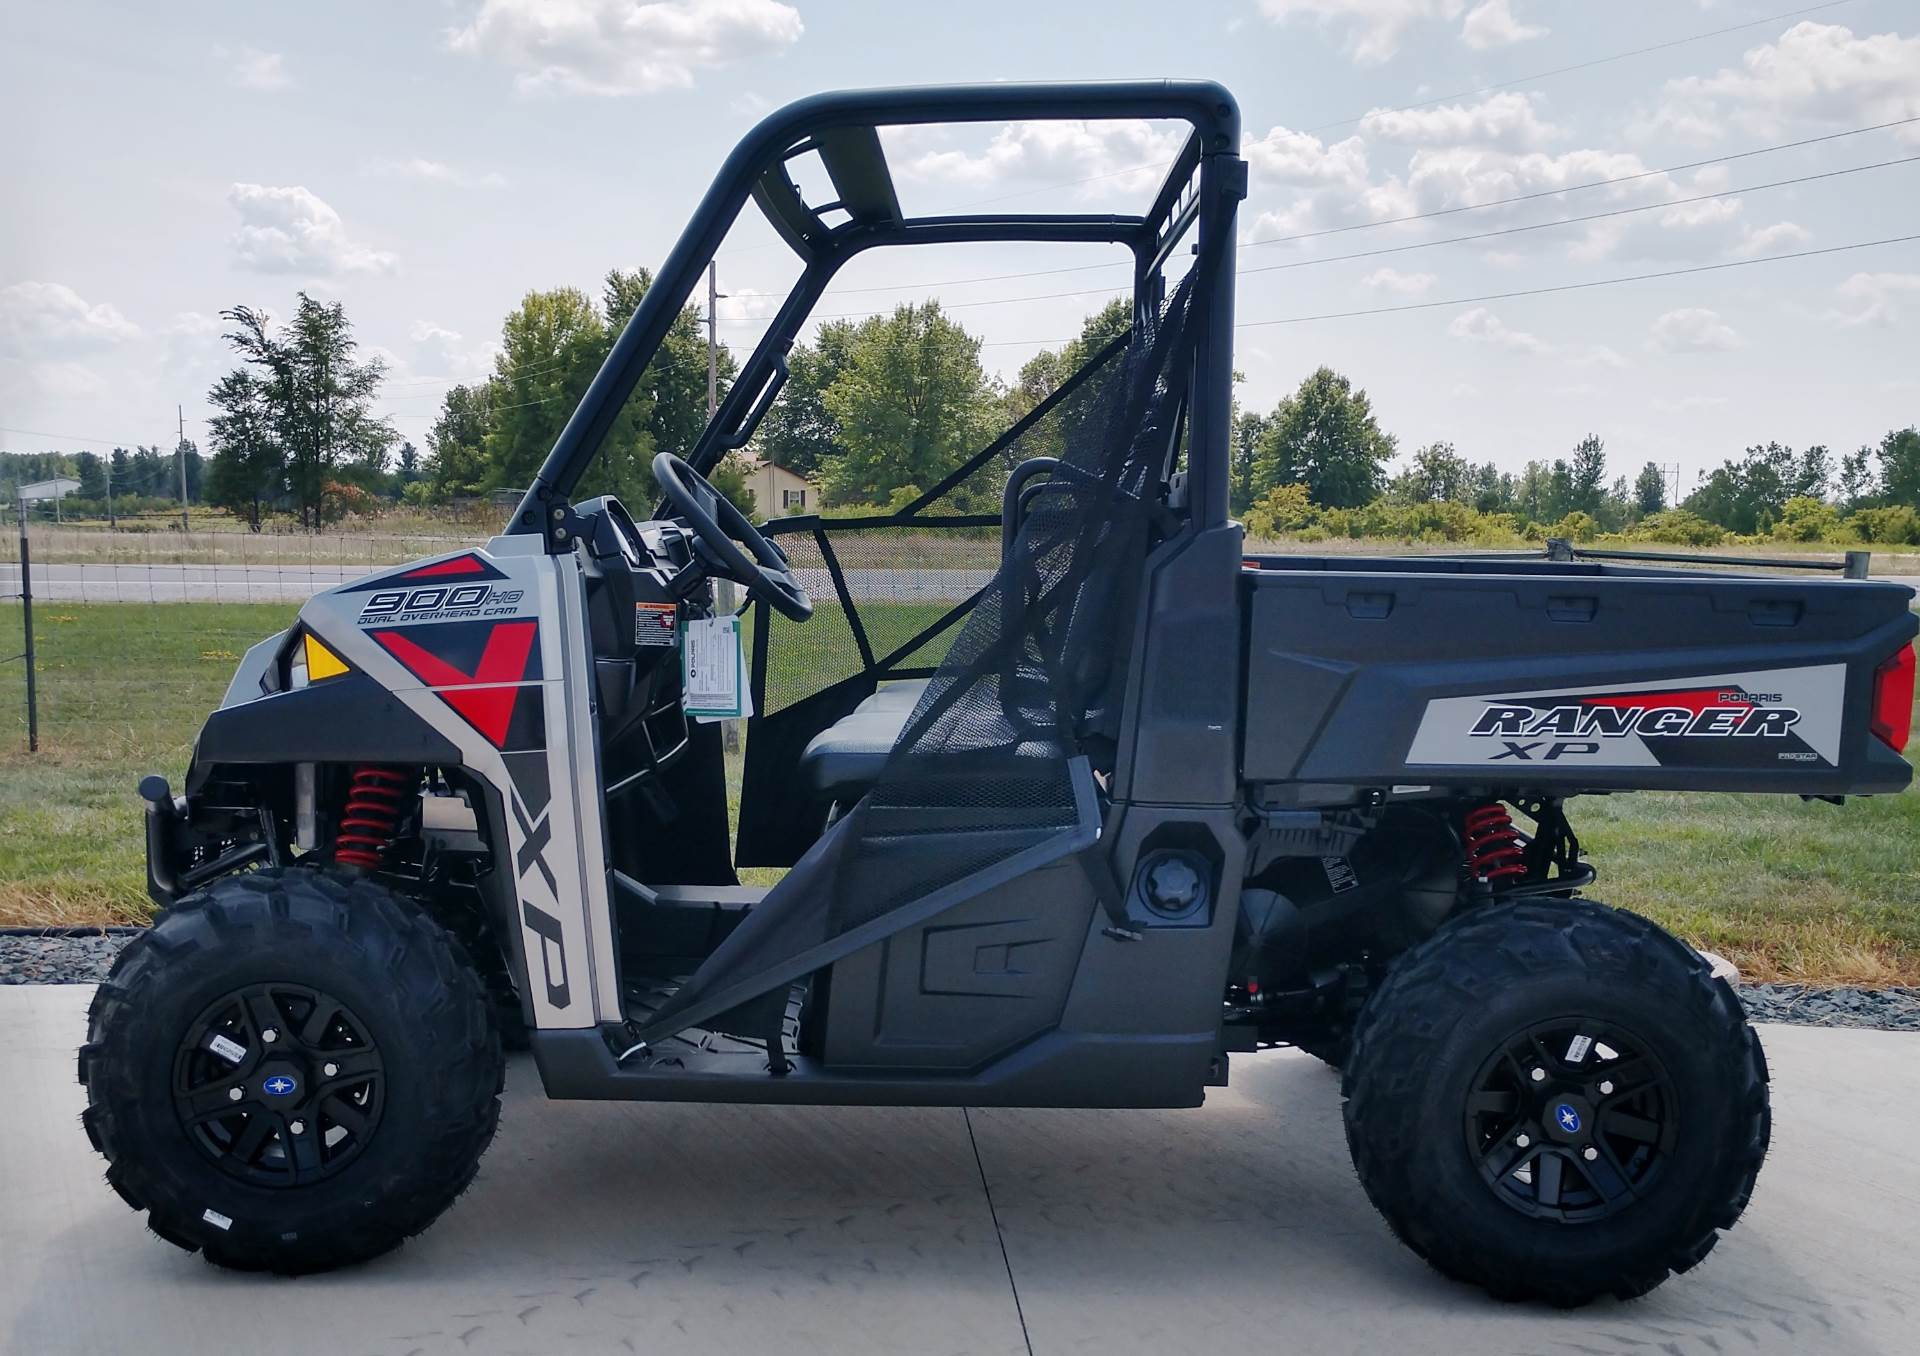 2019 Polaris Ranger XP 900 EPS 5